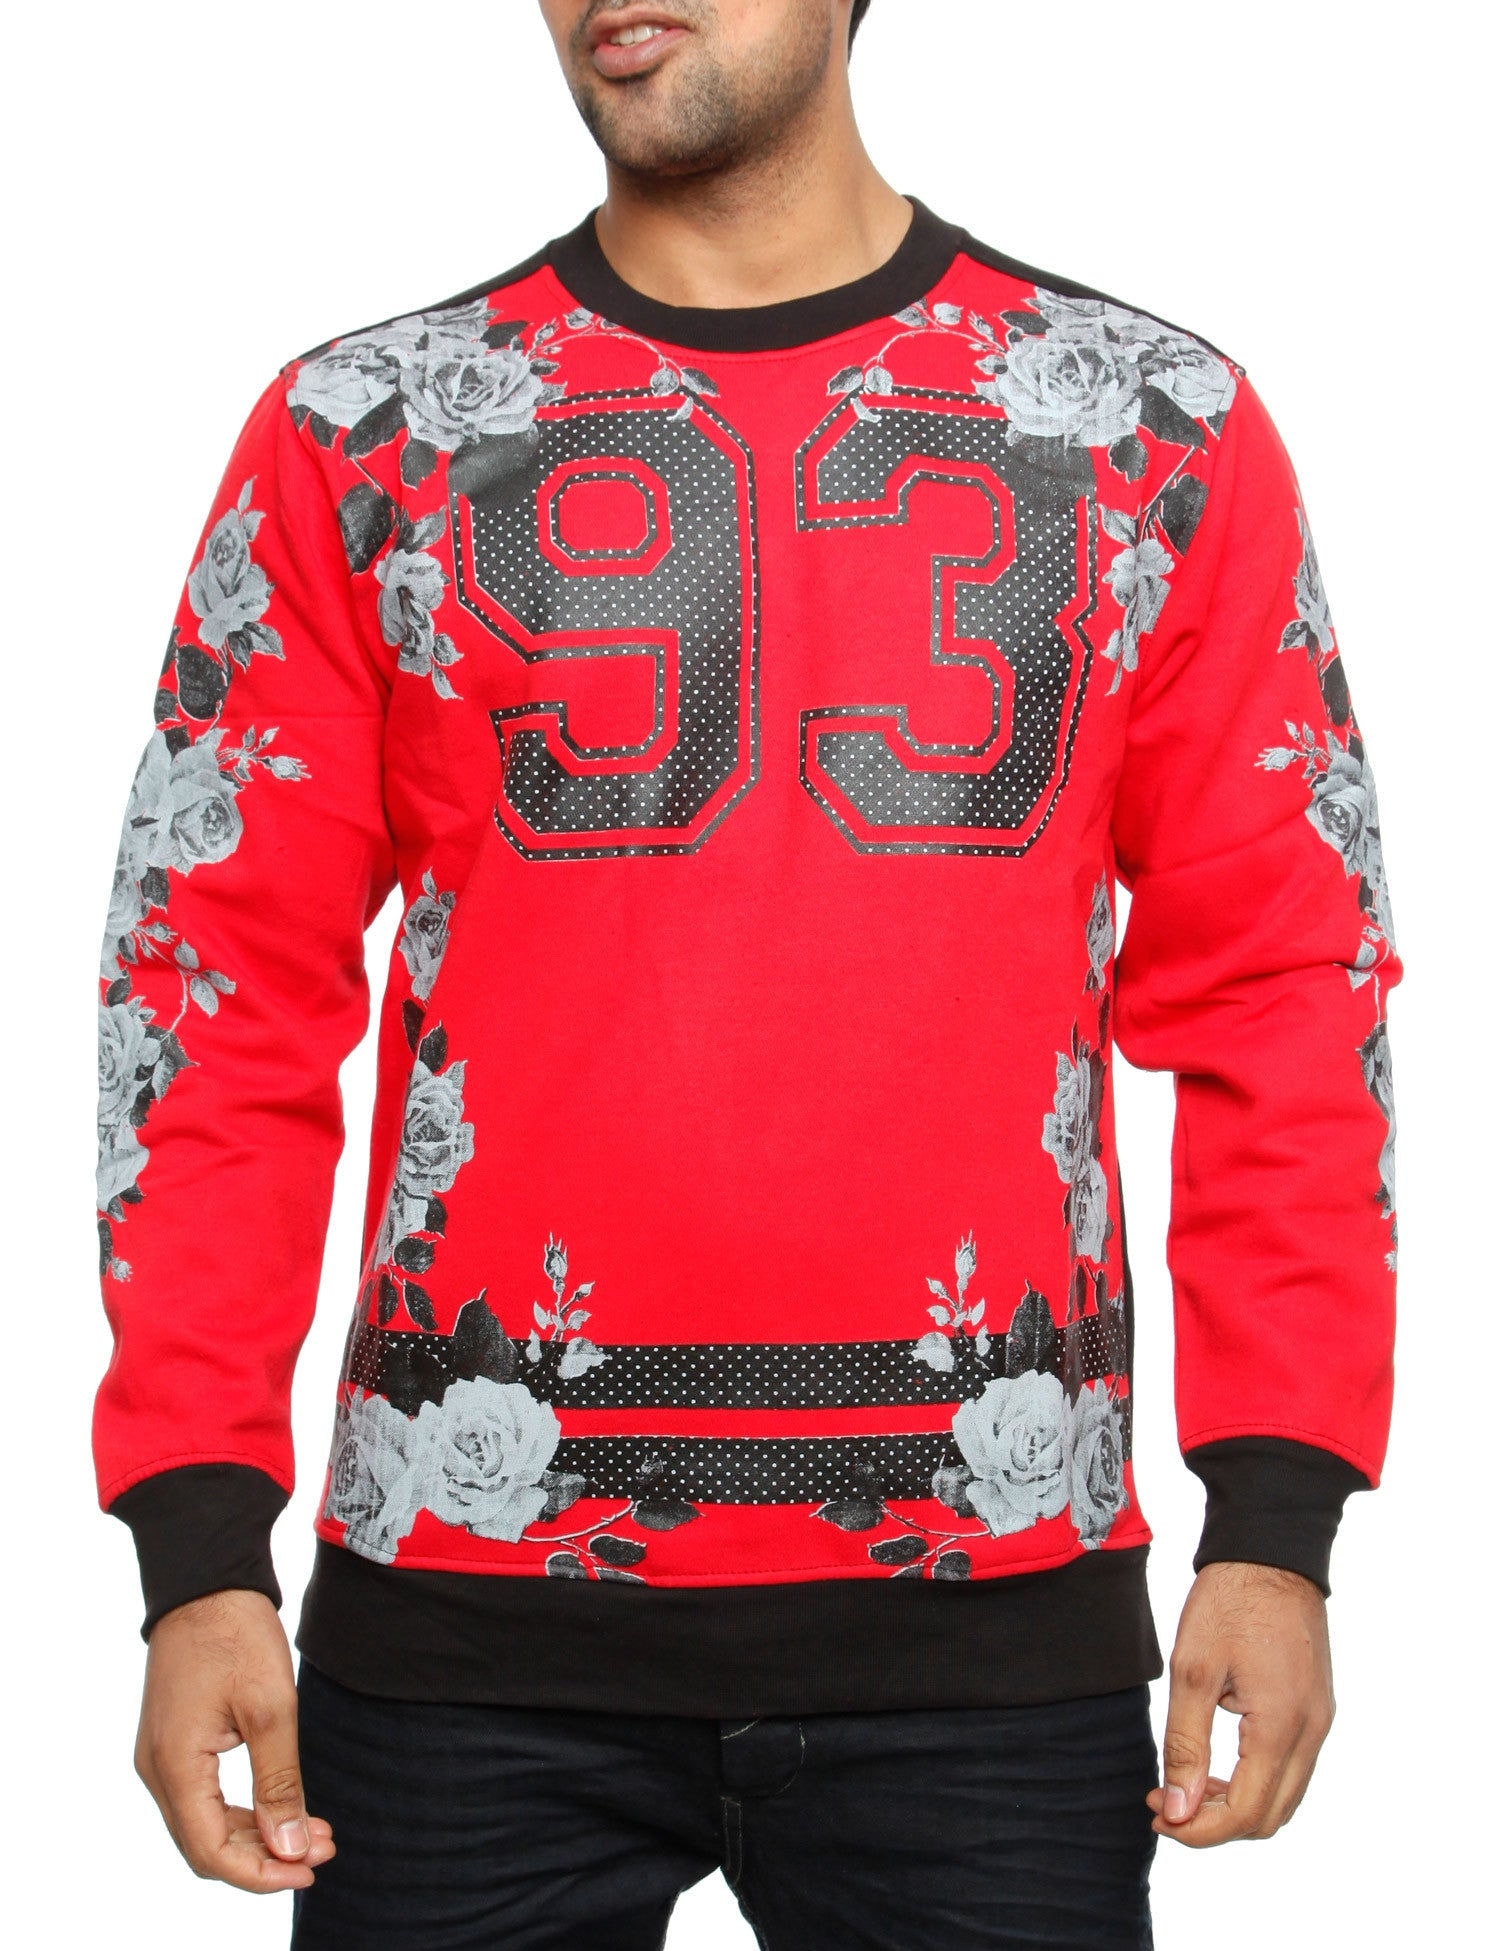 Imperious ?93? No. & Rose Sweatshirt CS82 Red